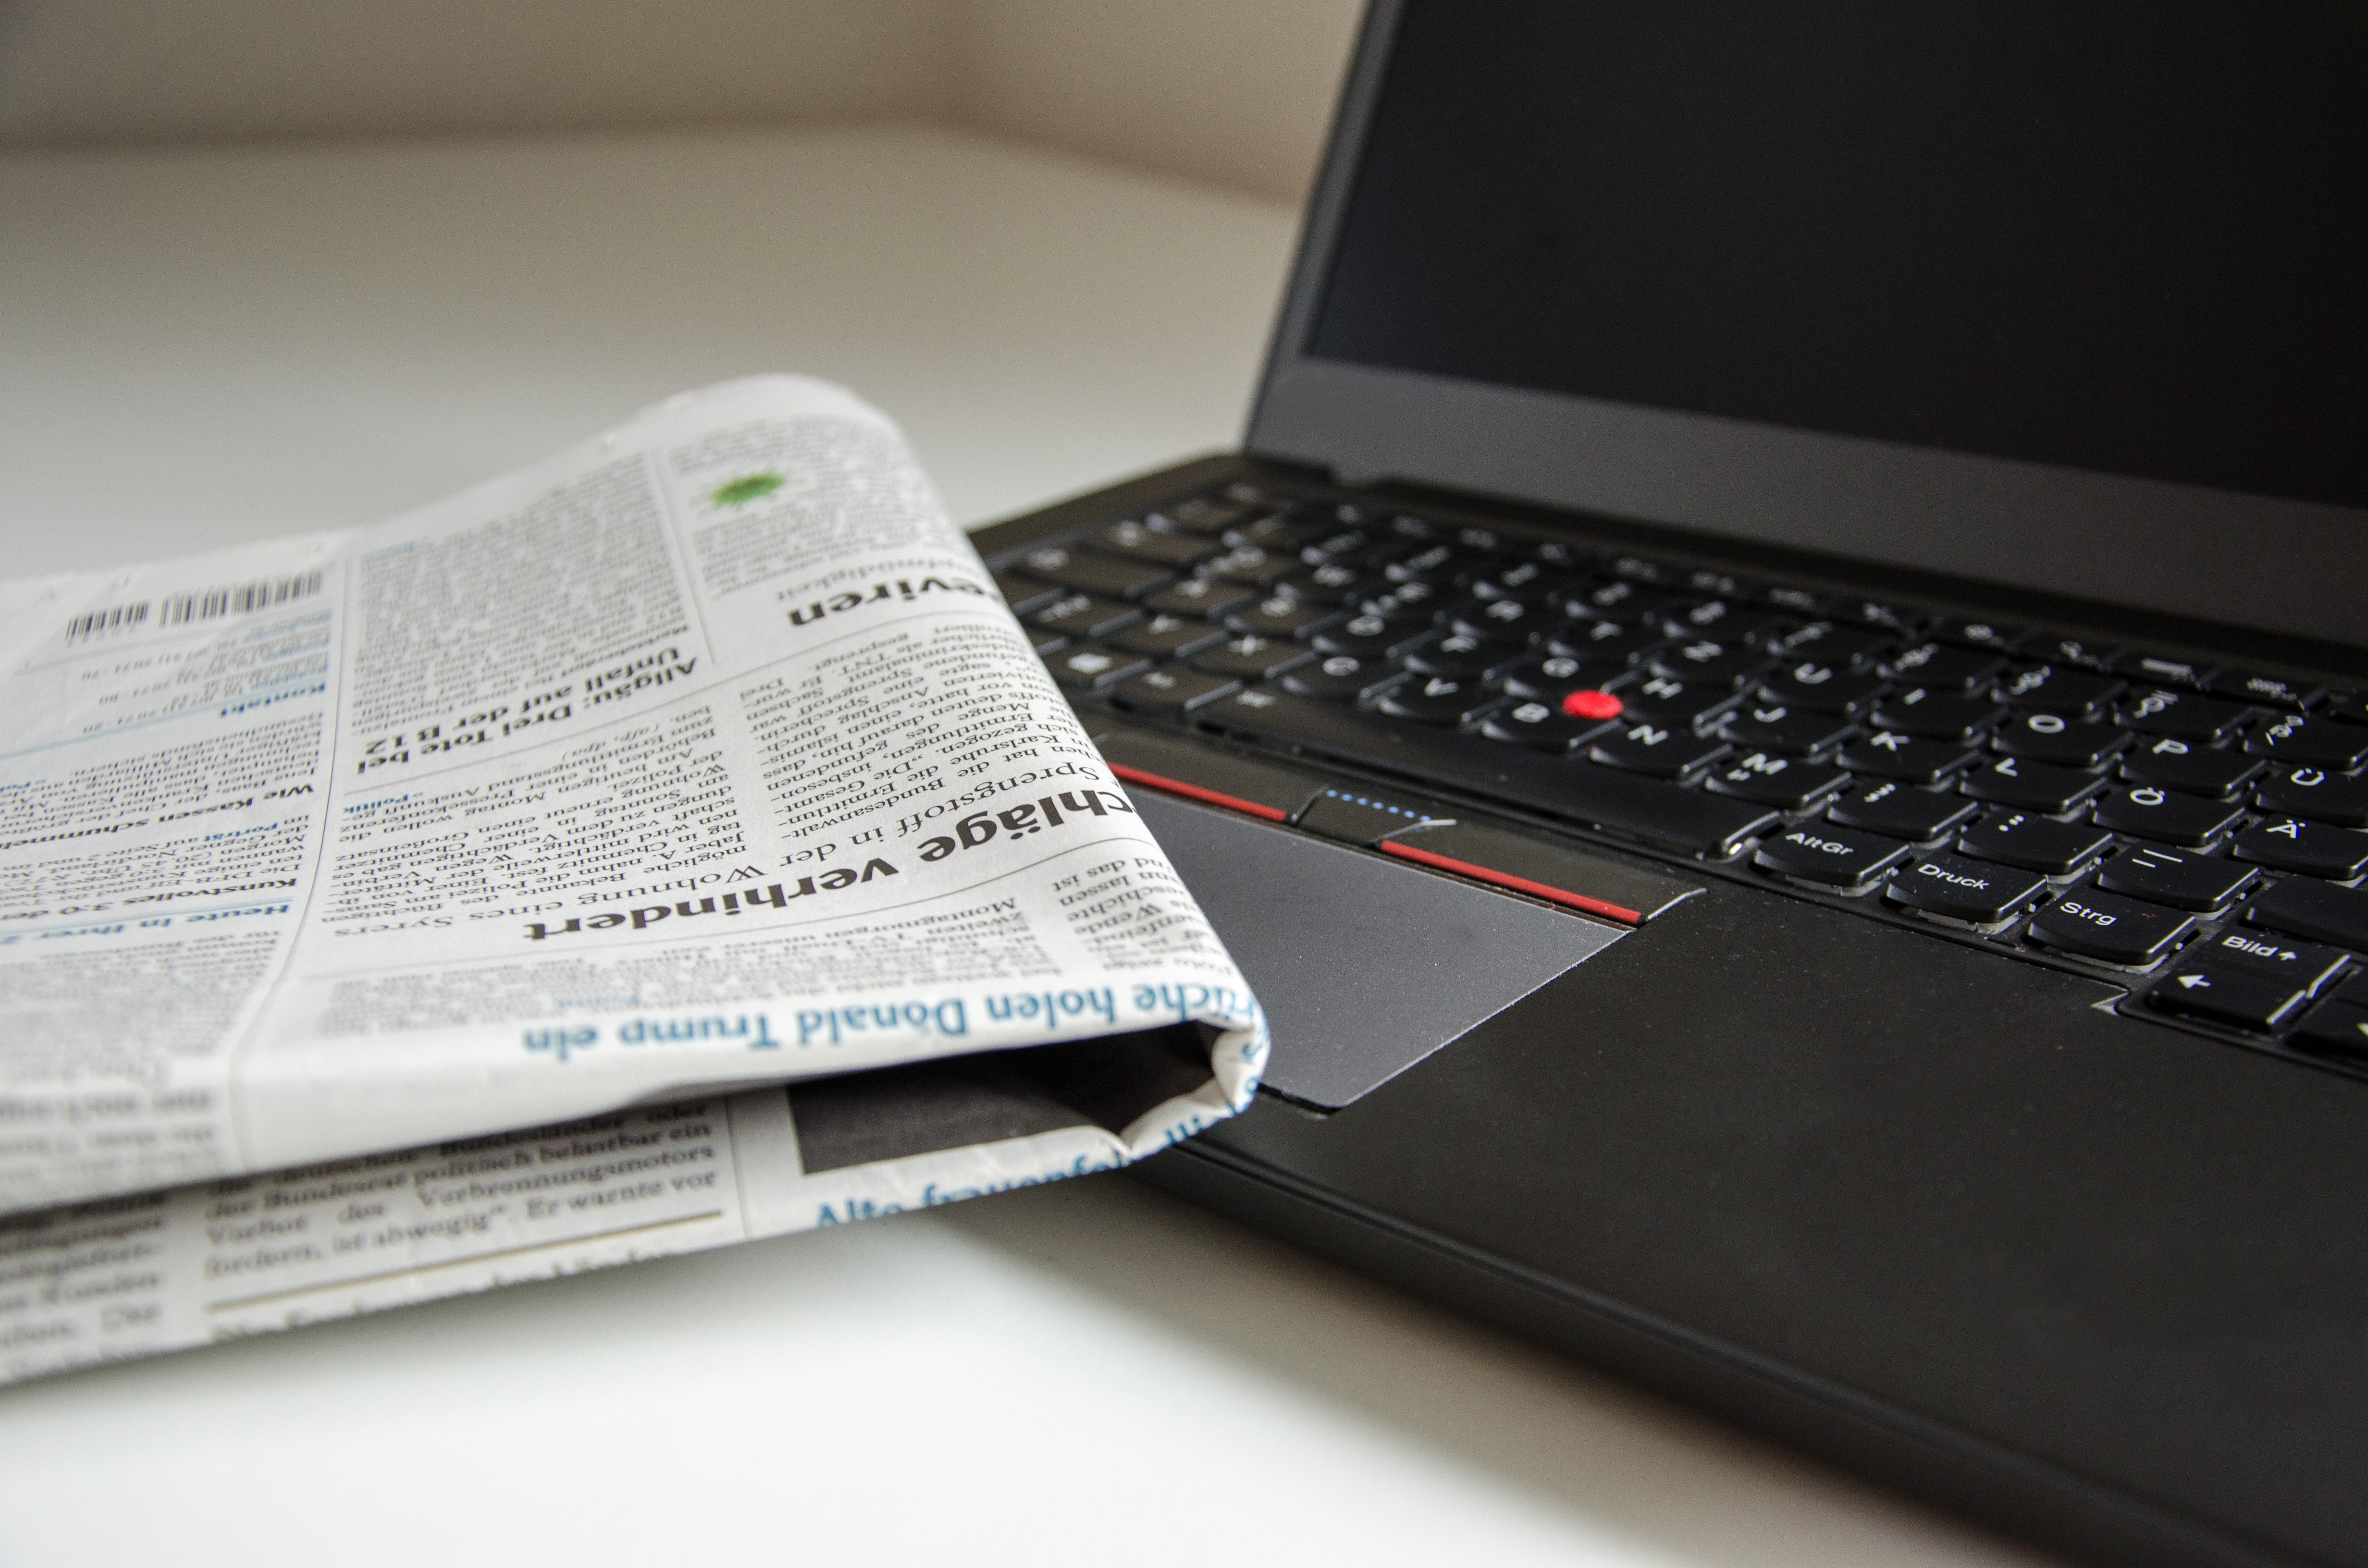 Laptop and newspaper